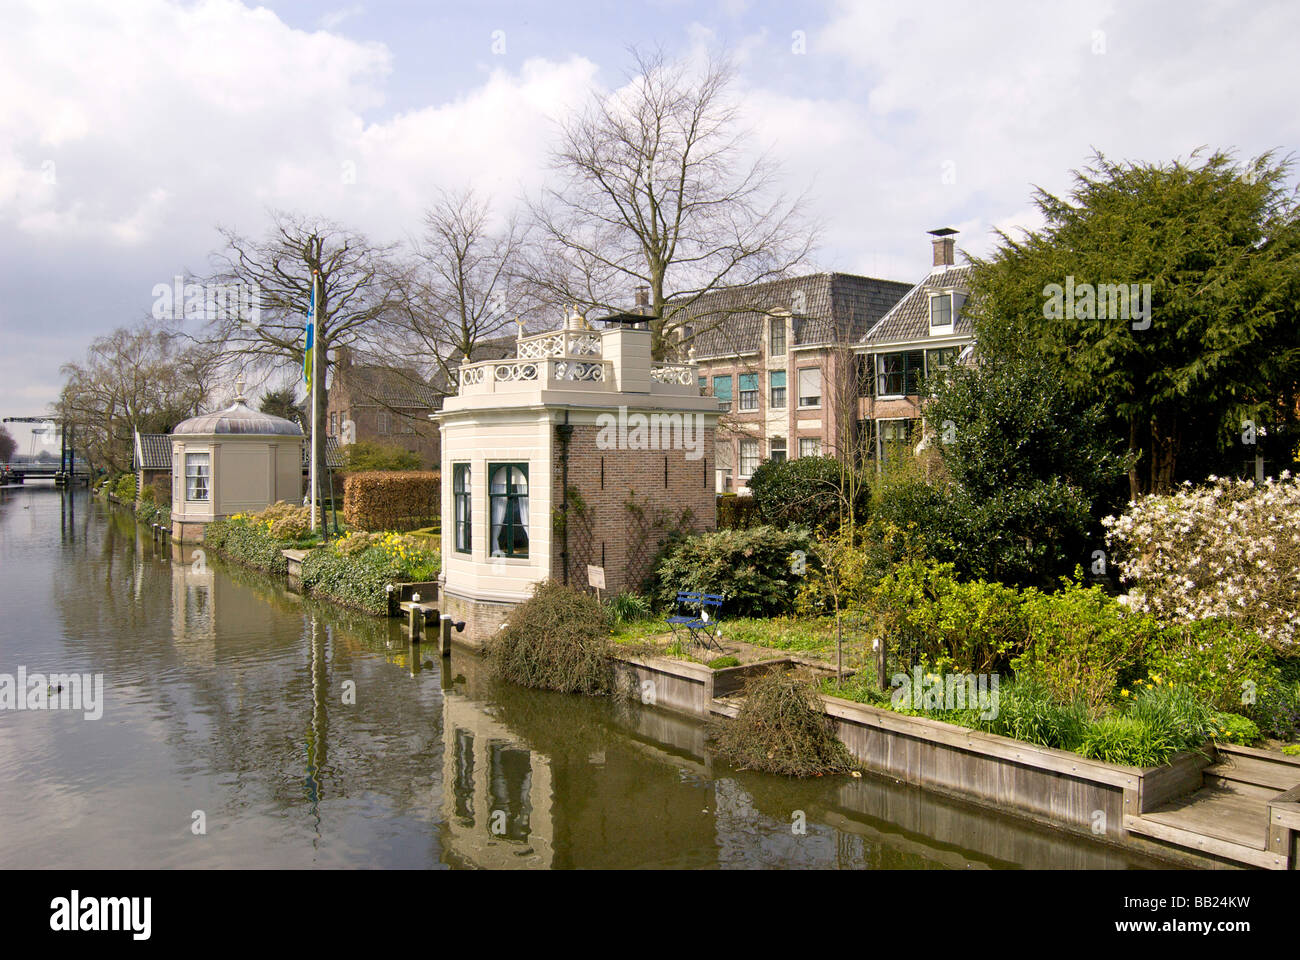 Europe, Netherlands, North Holland, Edam, Homes along canal - Stock Image